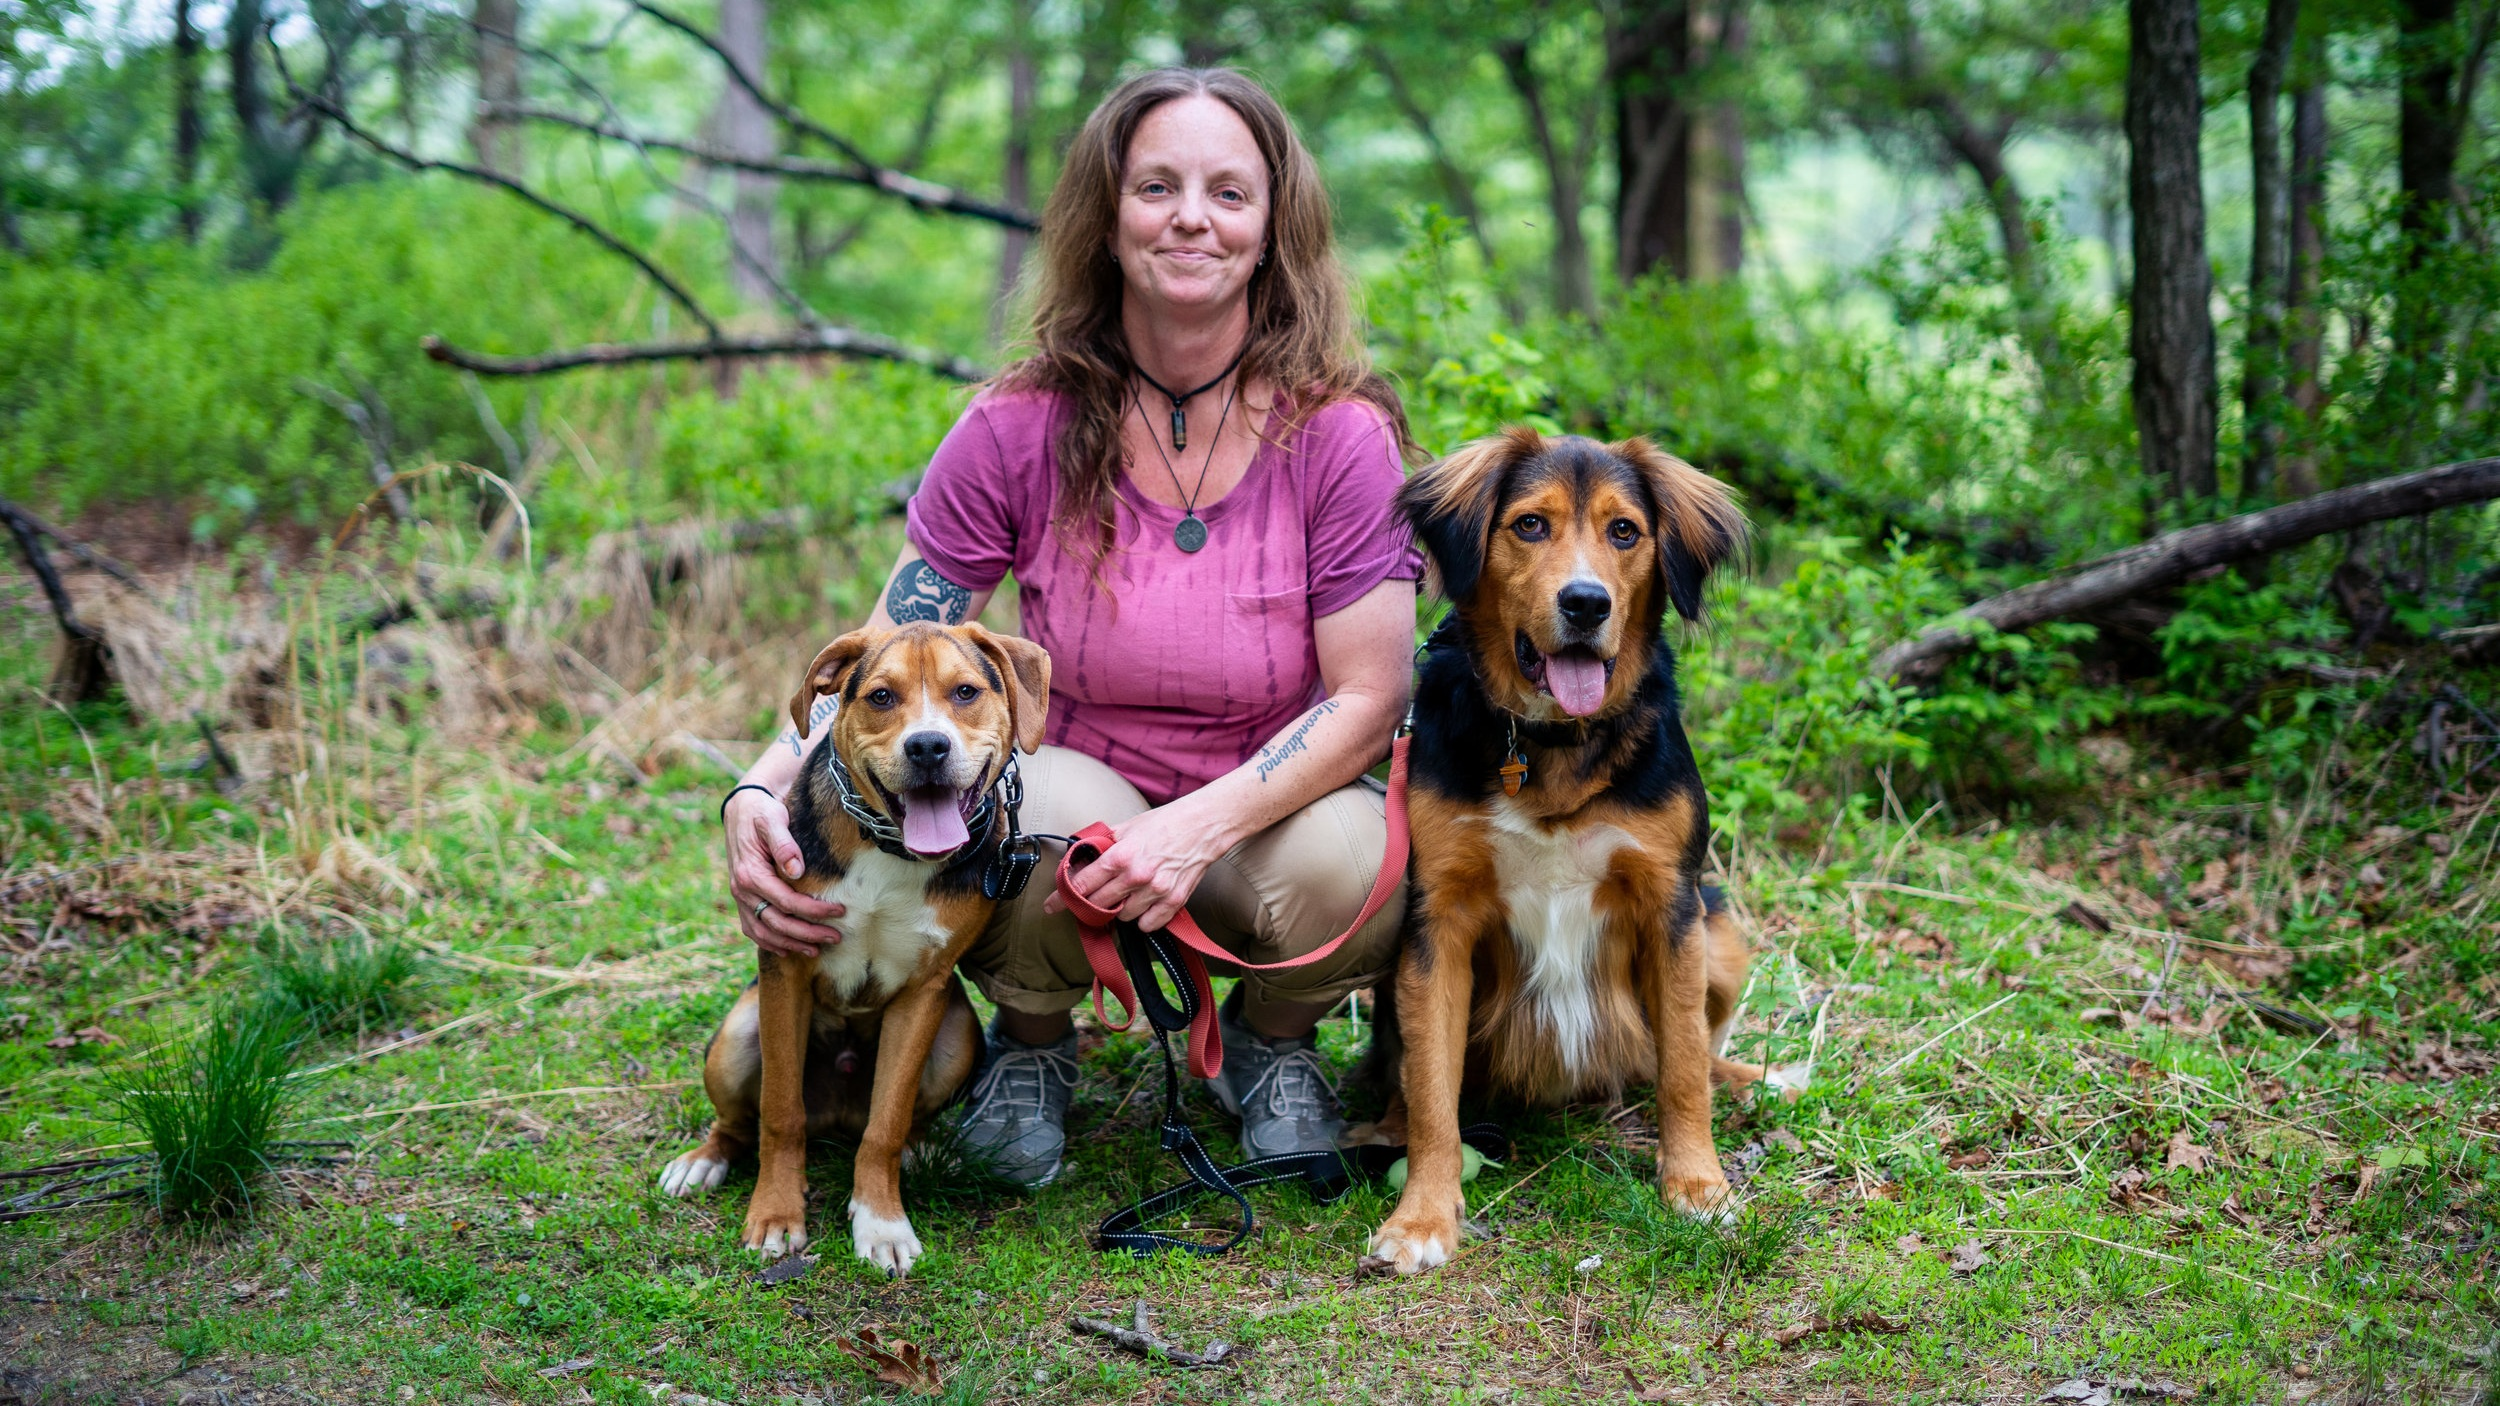 About Jessica Troop - Learn more about Jessica, her journey as a dog trainer, and her training philosophy.